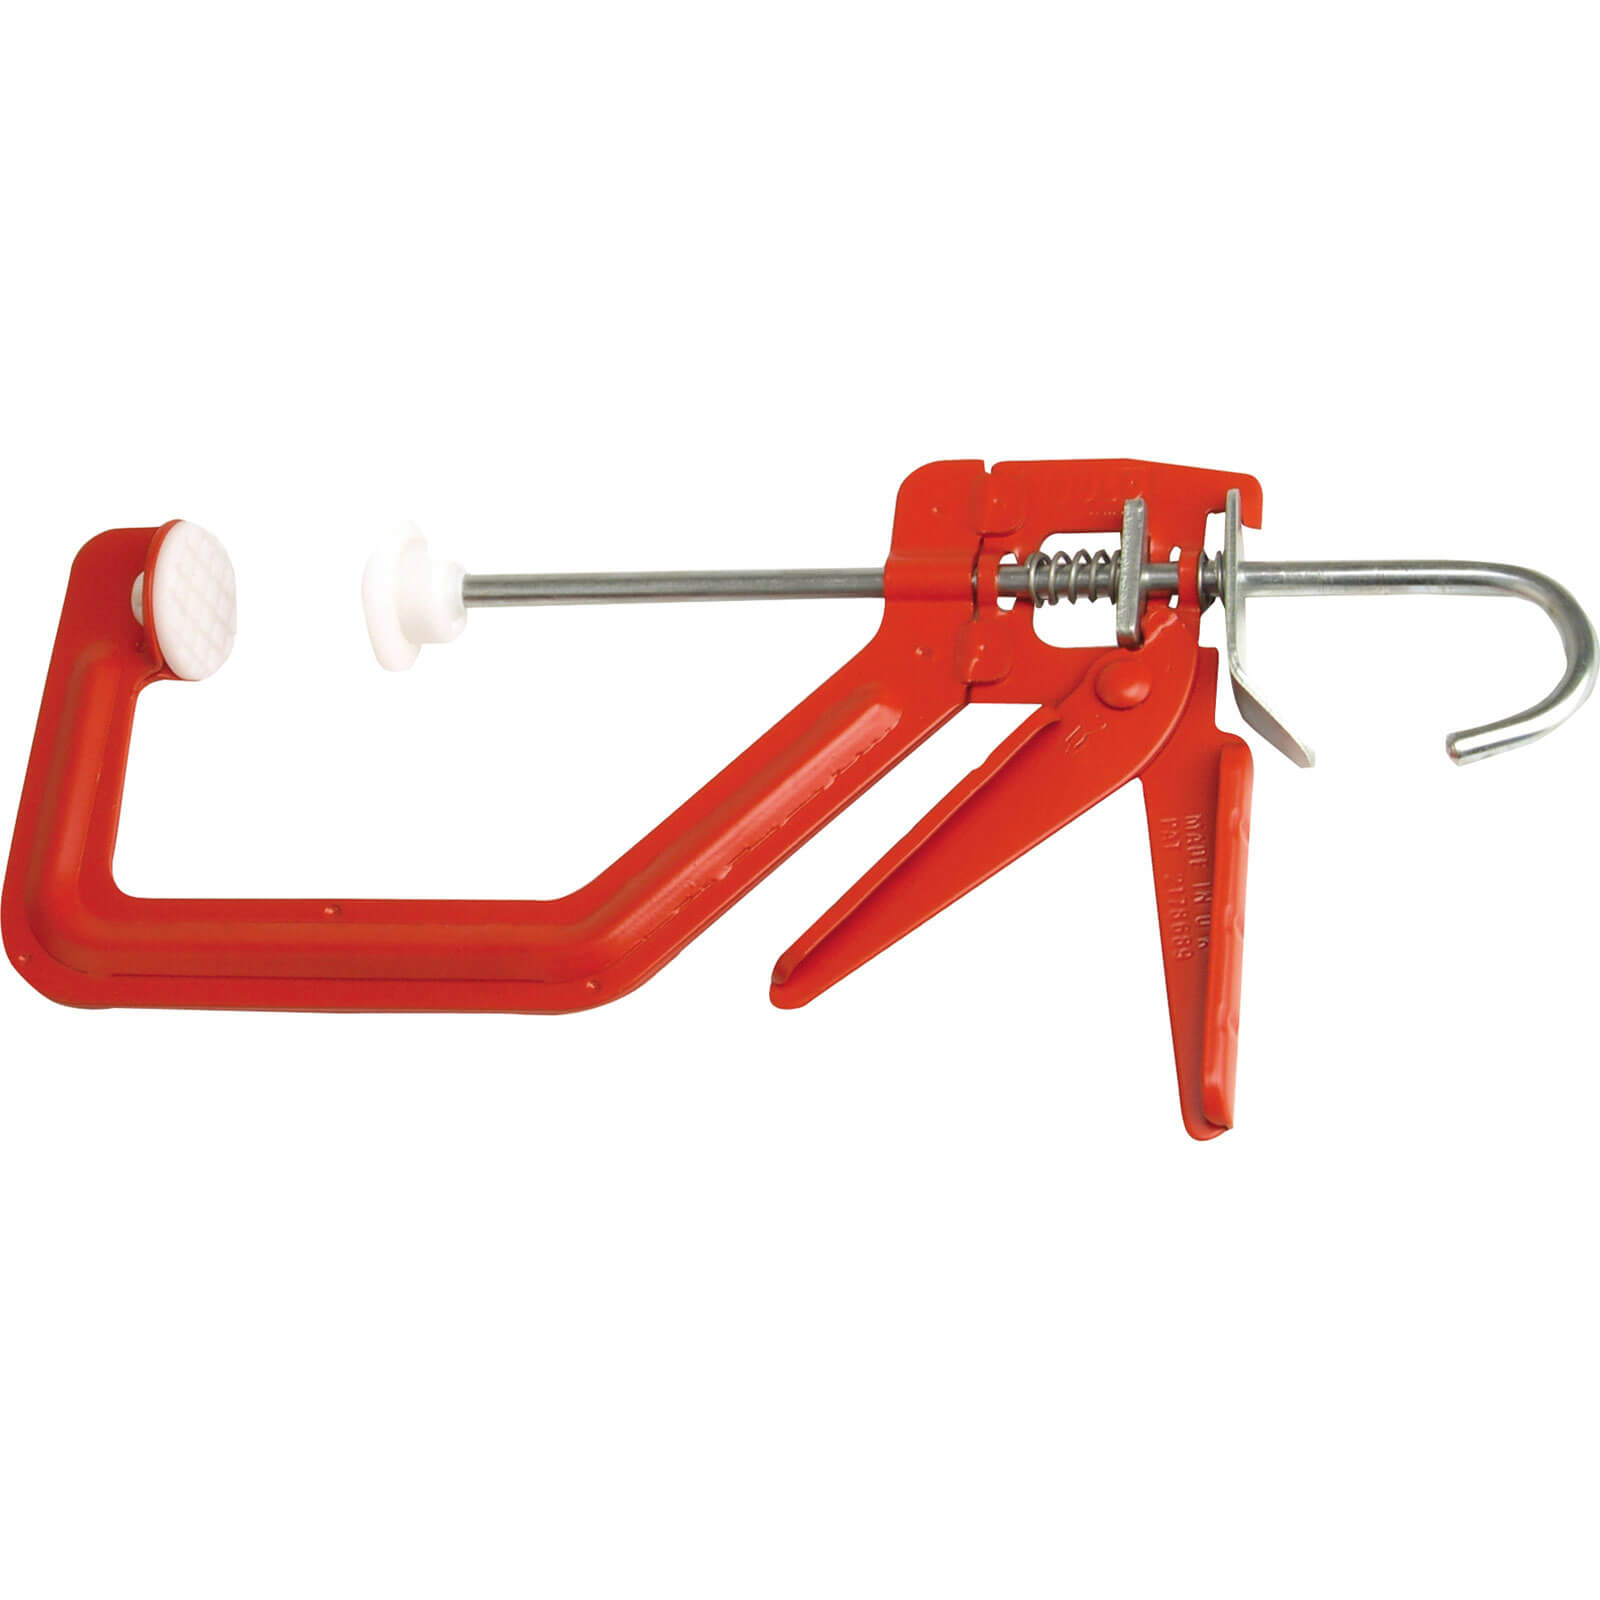 Image of Cox Solo One Handed G Clamp Plastic Feet 150mm